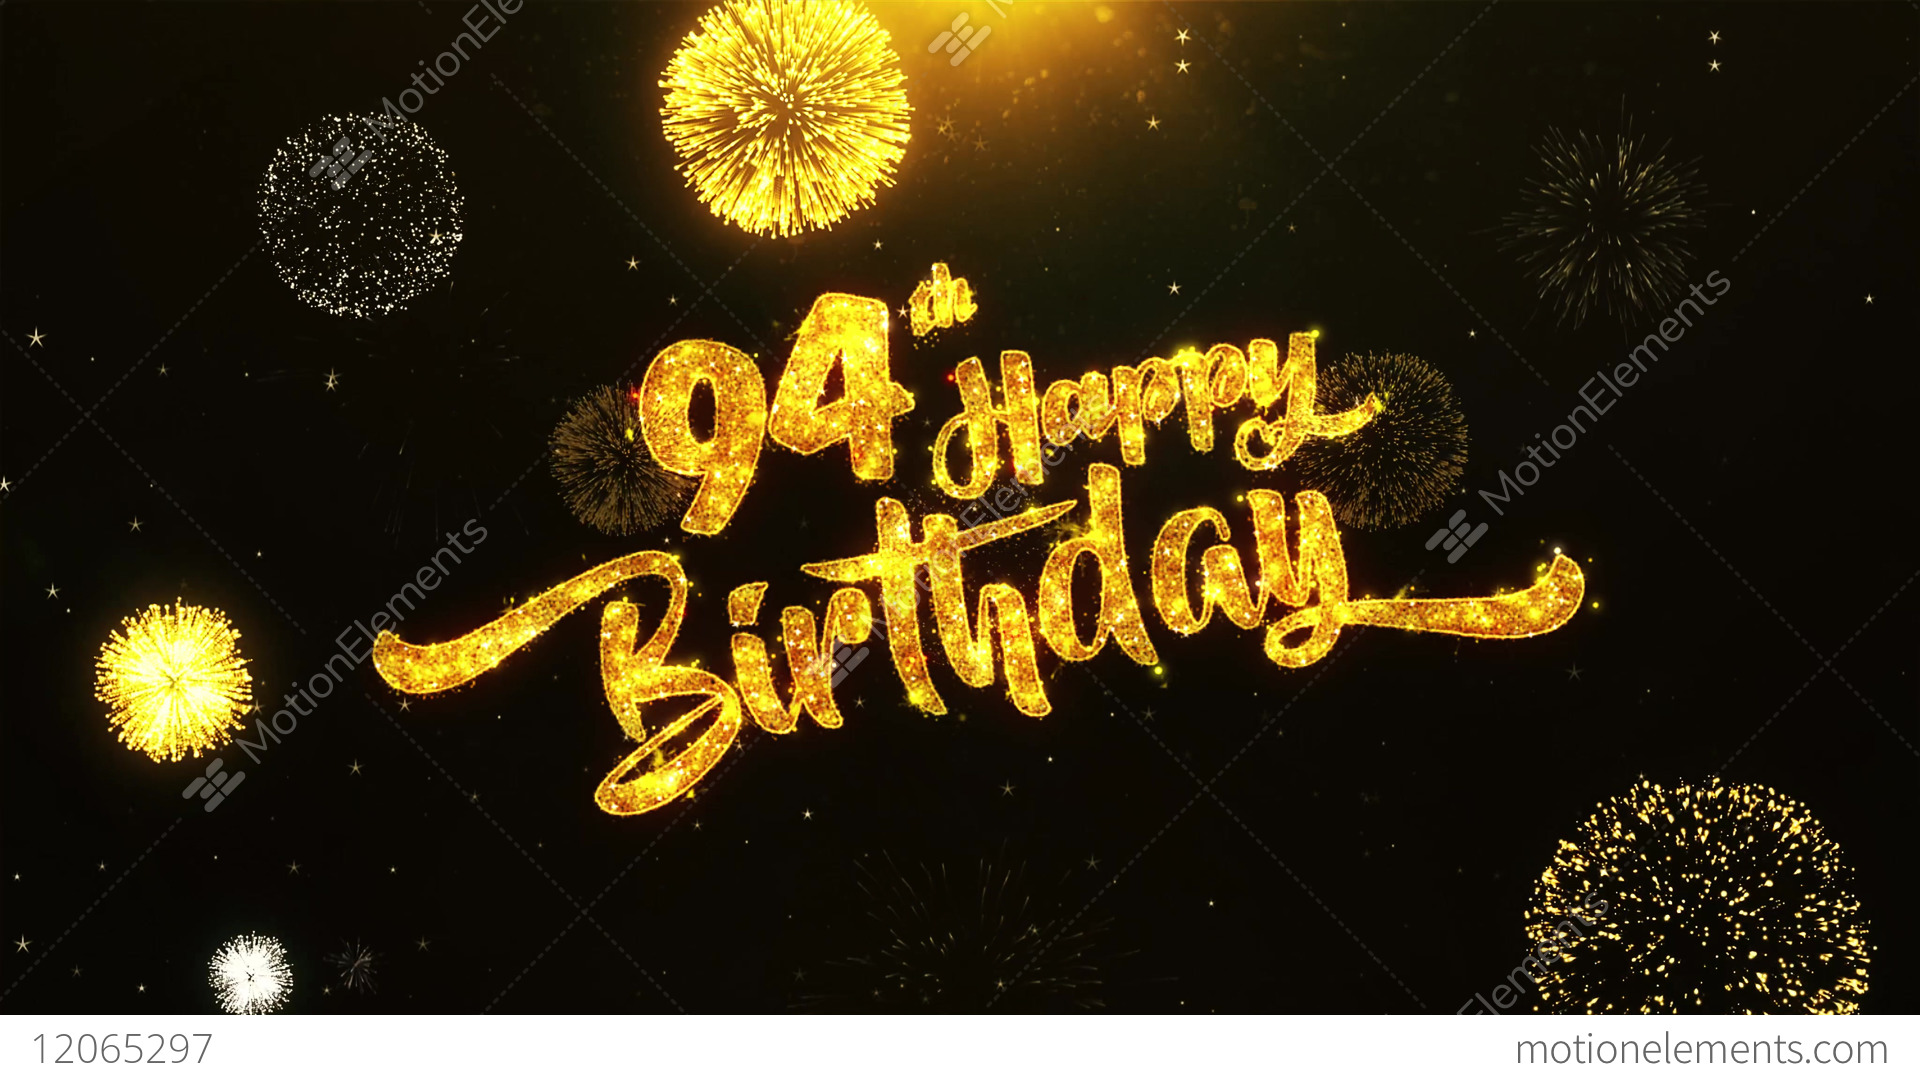 94th Happy Birthday Text Greeting Wishes Celebration Stock Video Footage